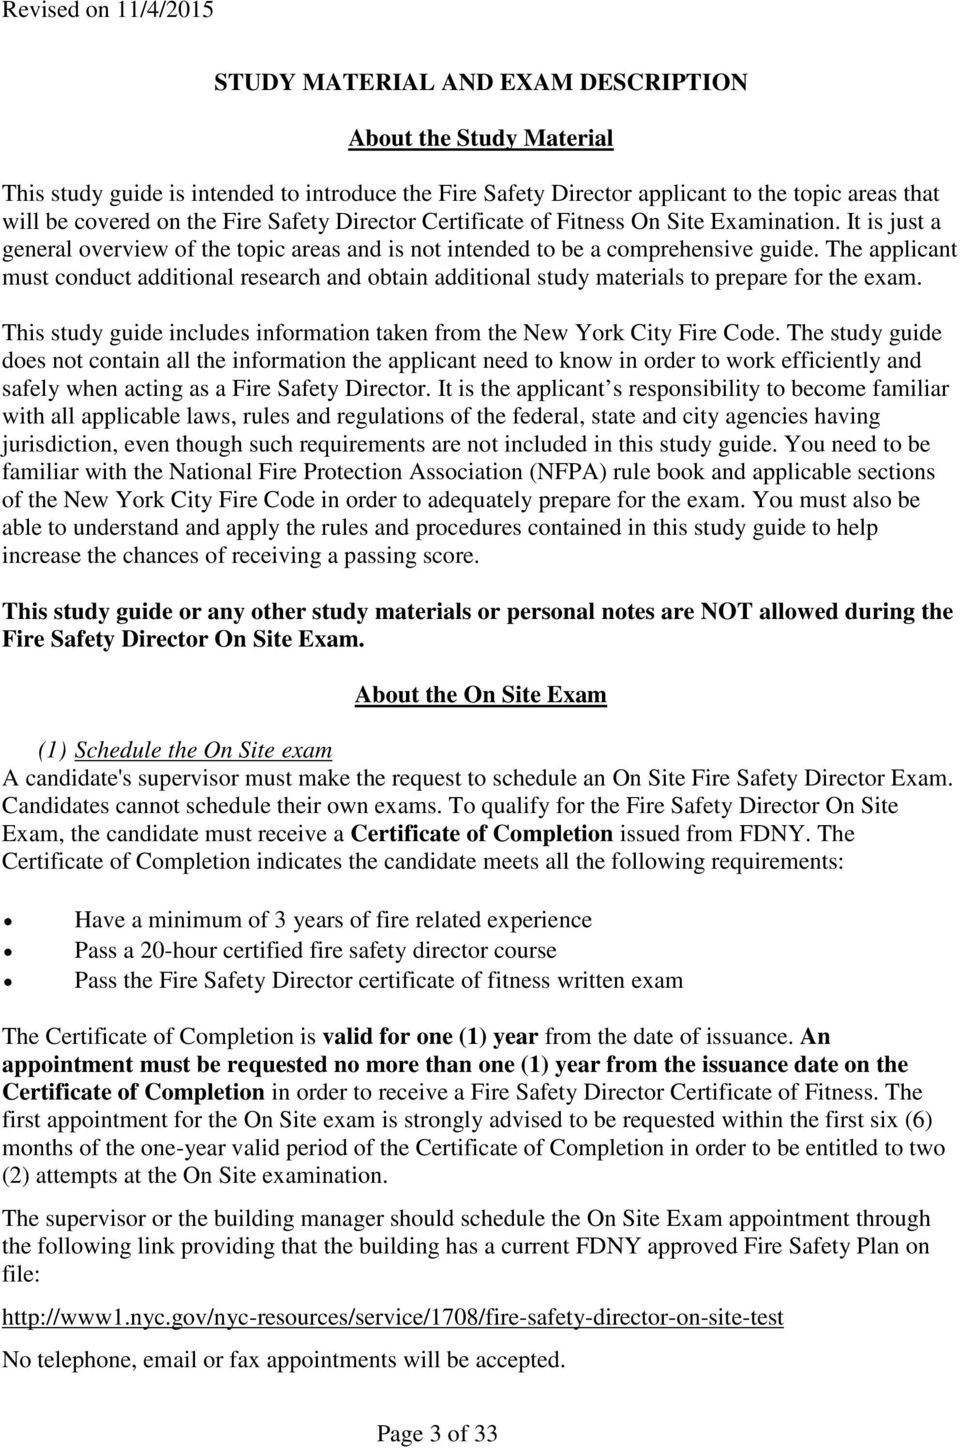 The applicant must conduct additional research and obtain additional study materials to prepare for the exam. This study guide includes information taken from the New York City Fire Code.